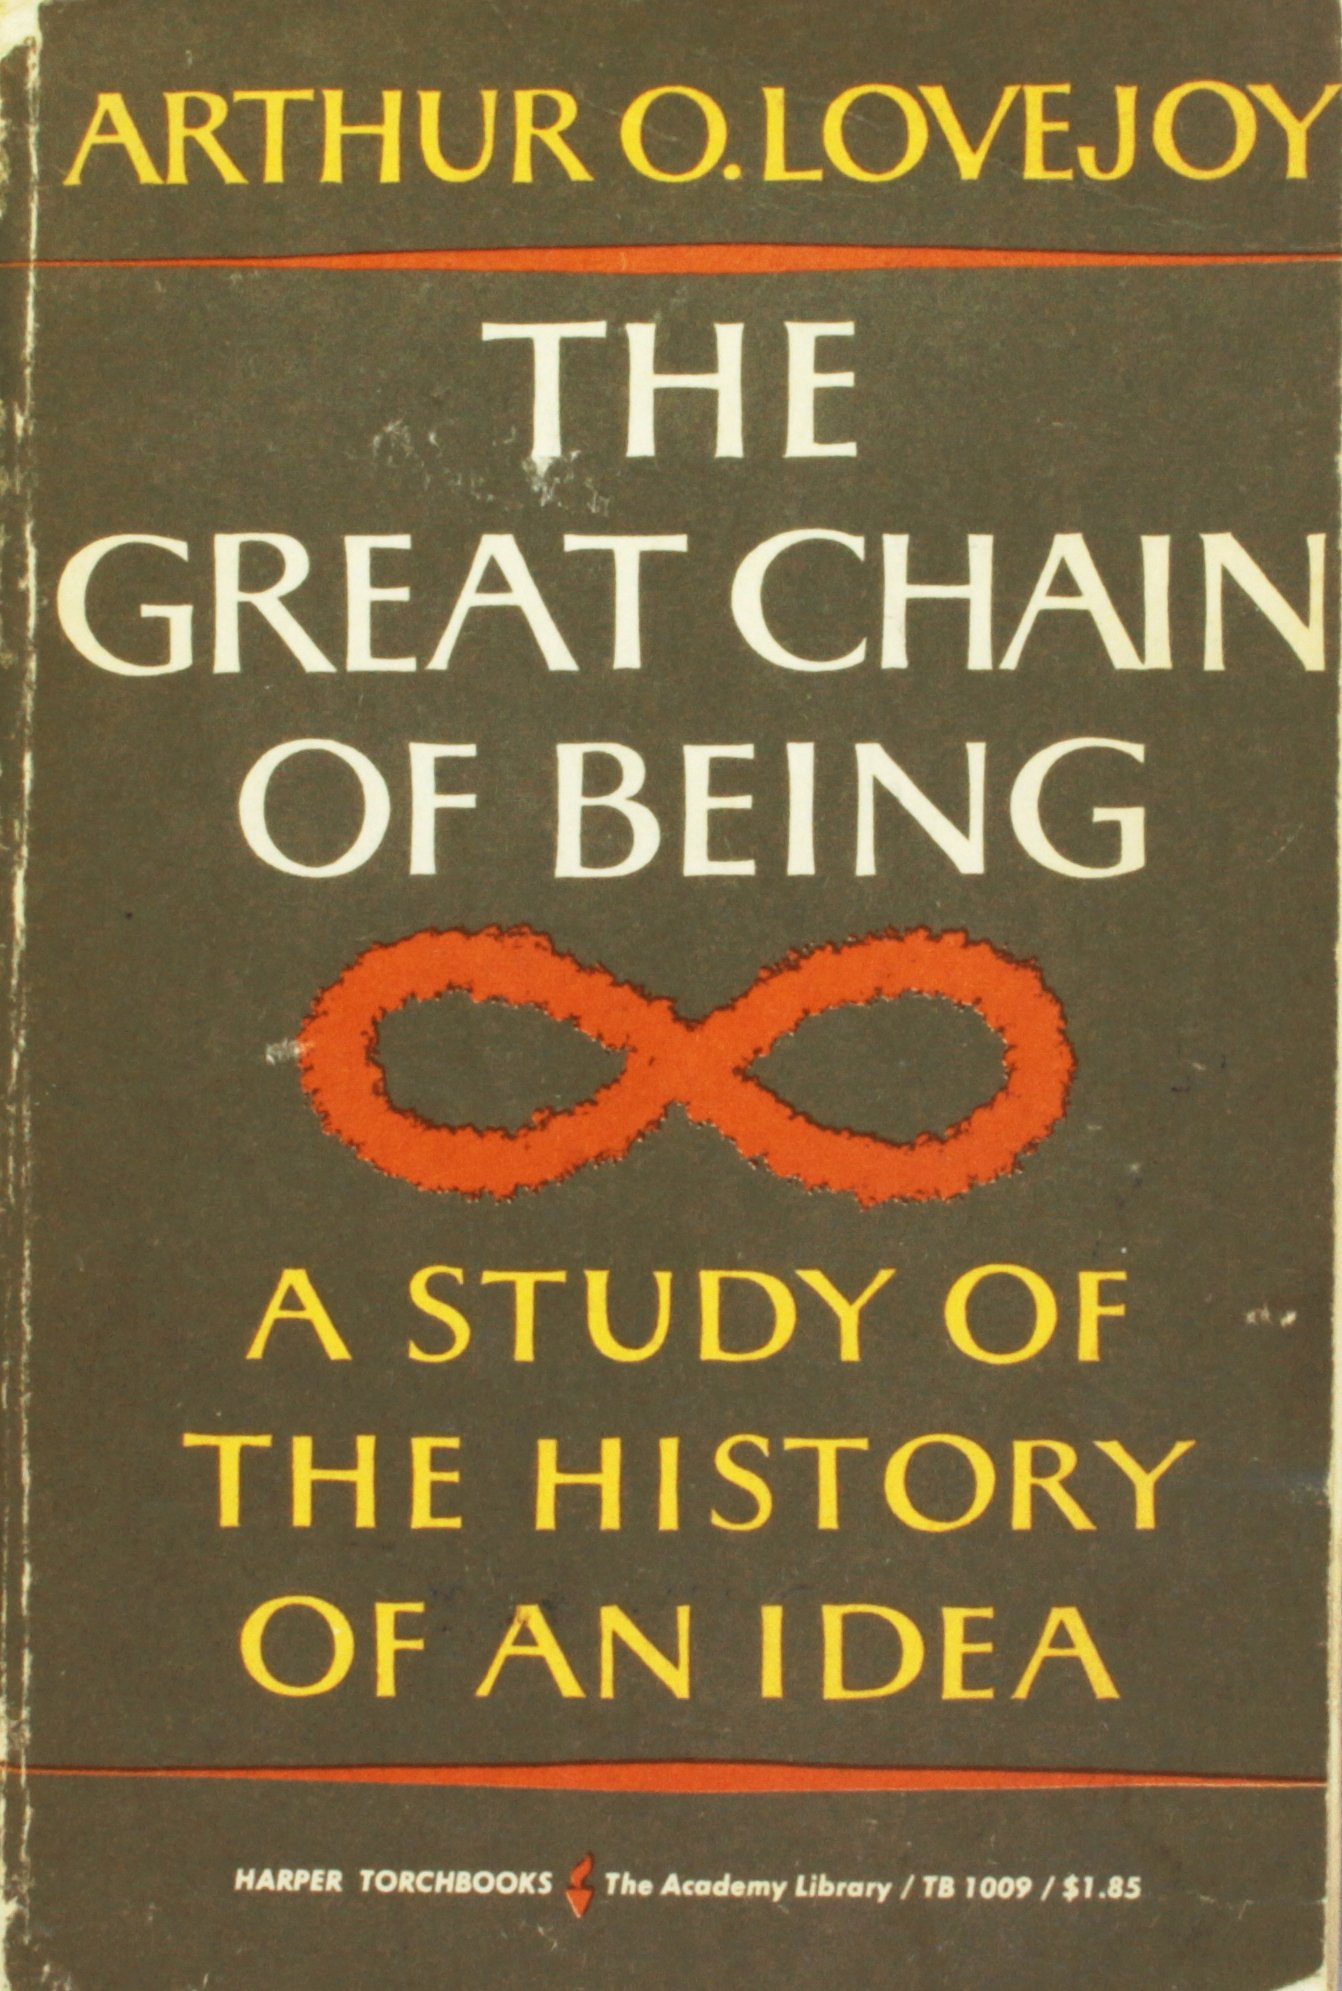 A Study of the History of an Idea